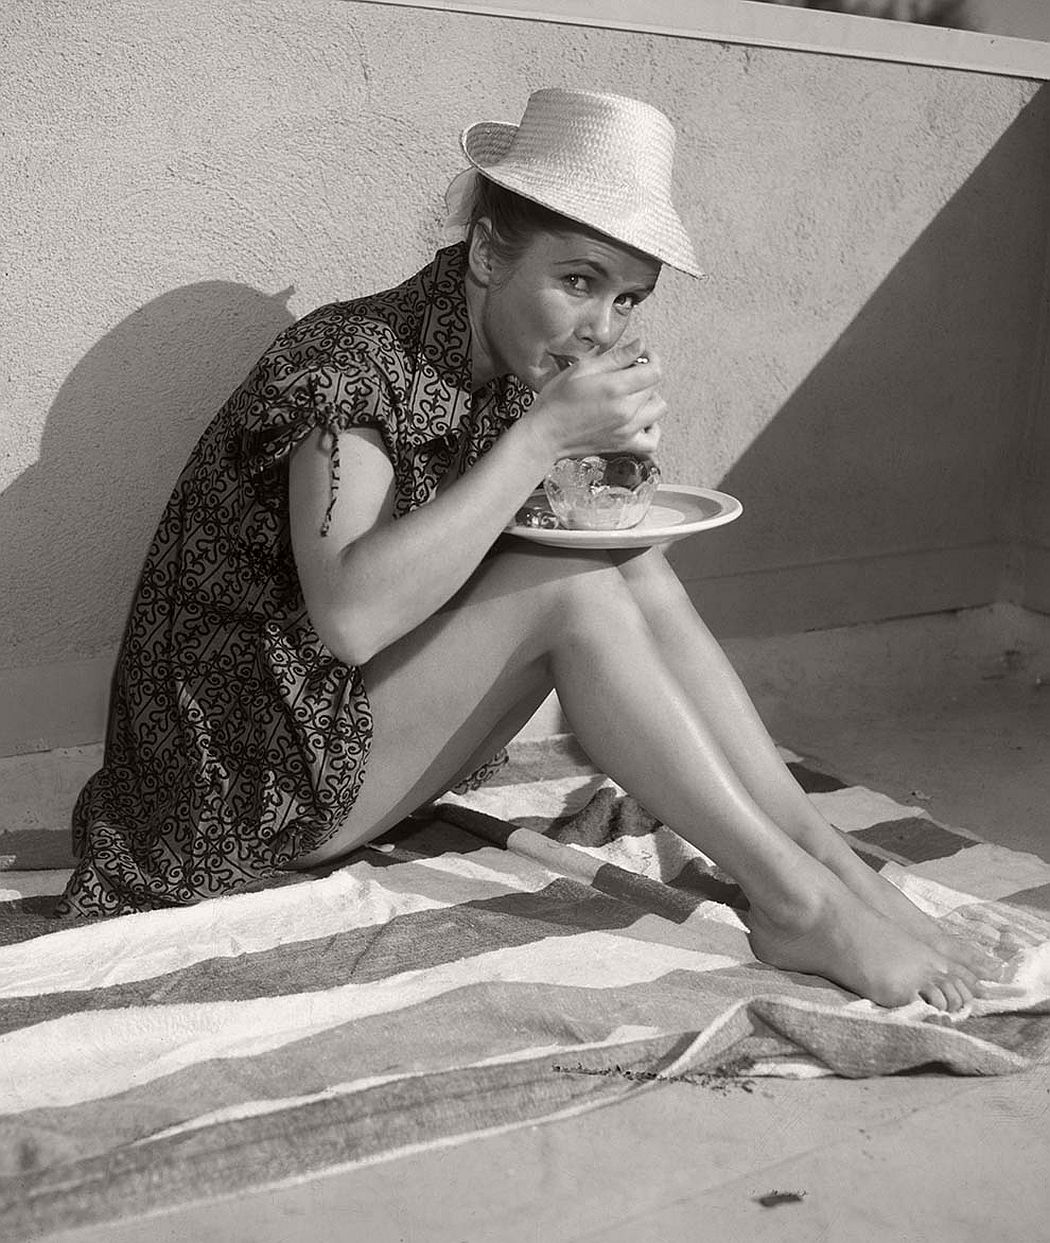 vintage-funny-bw-photos-of-celebrities-eating-10